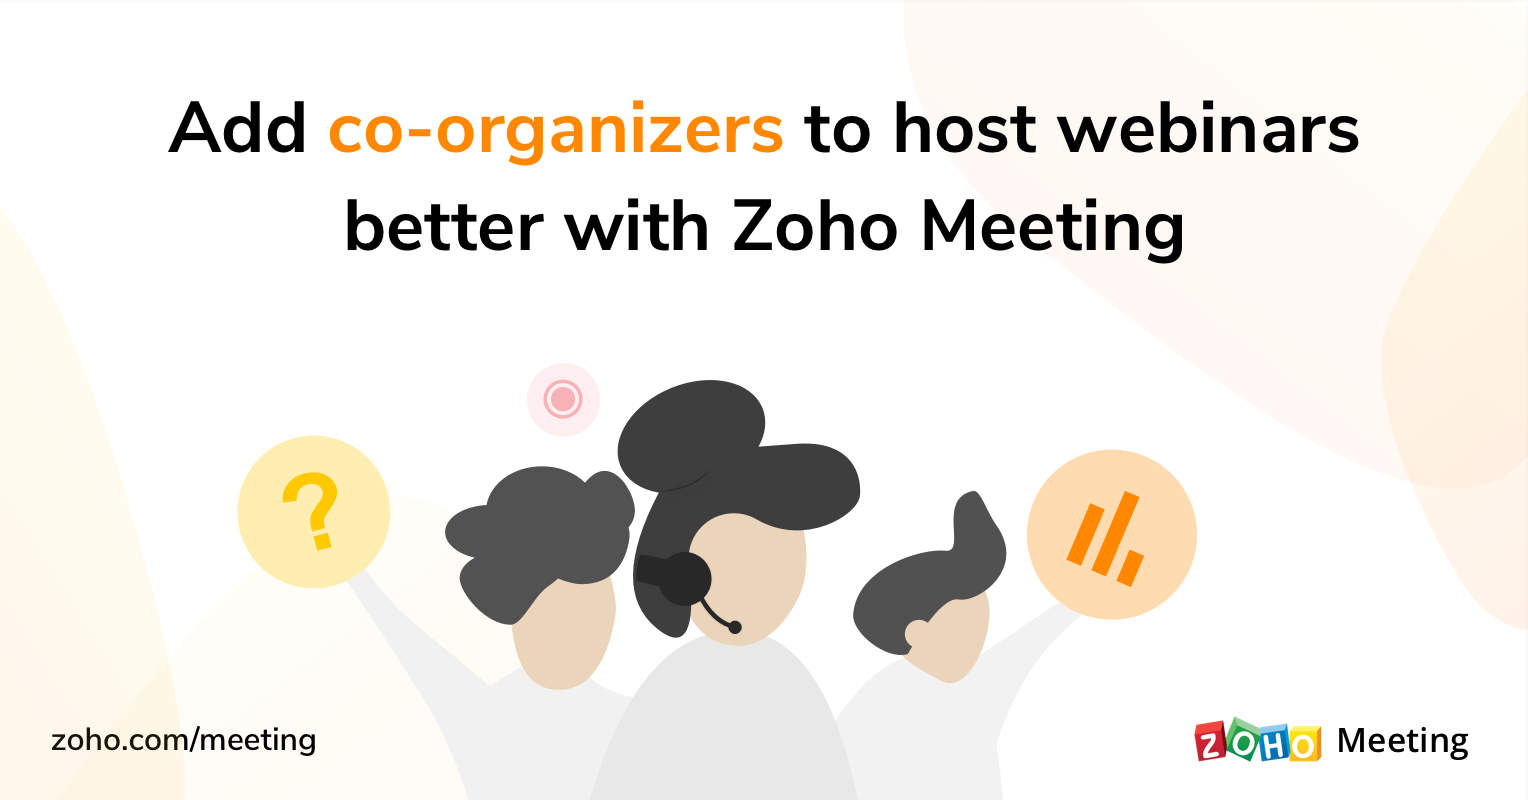 Introducing co-organizers for webinars in Zoho Meeting